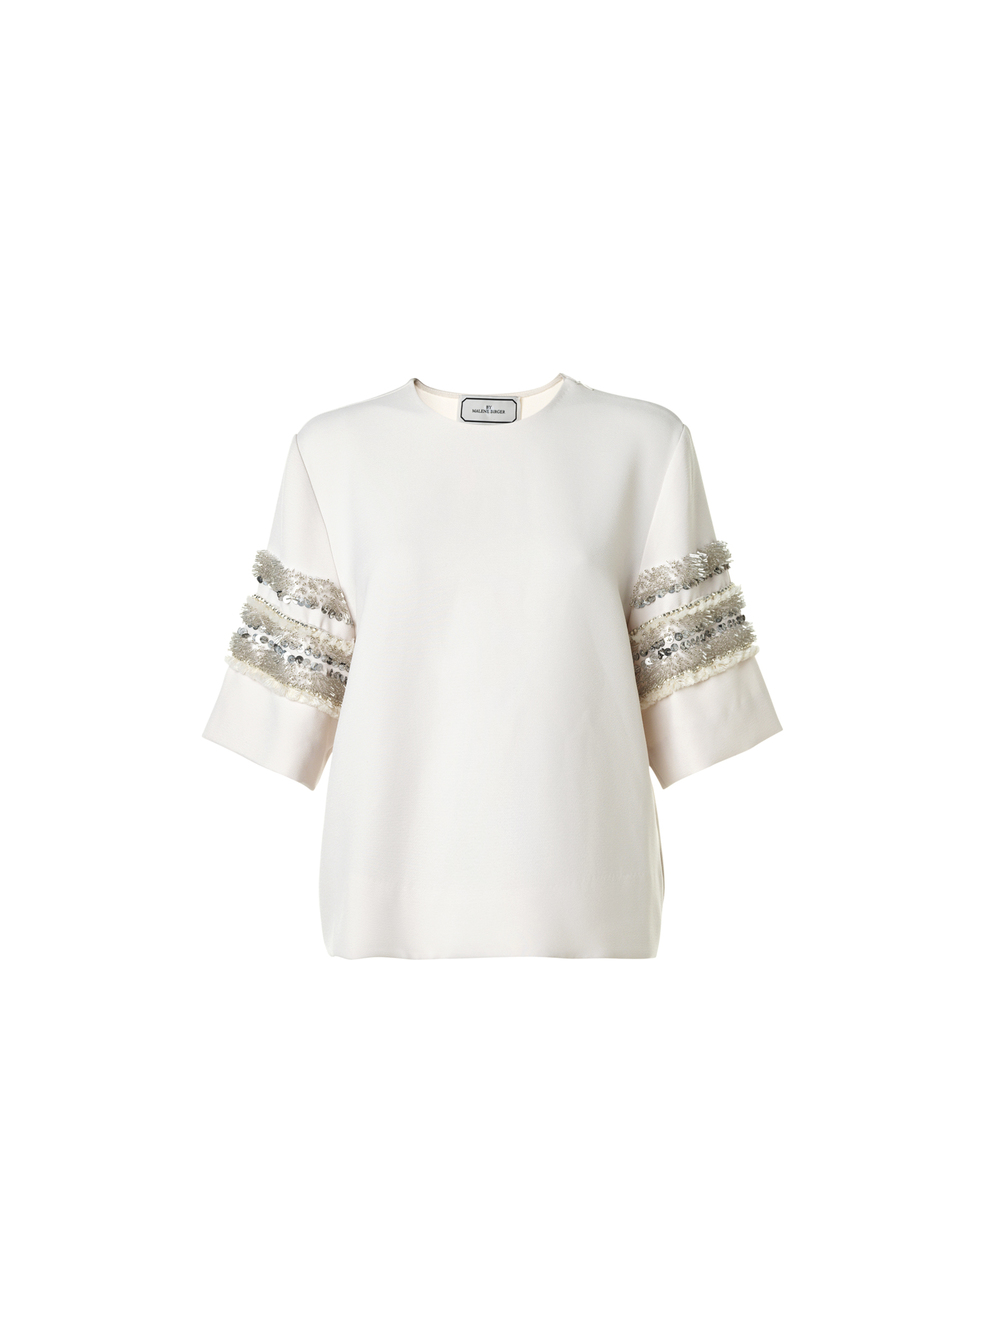 By Malene Birger PAMARA Blouse.jpg